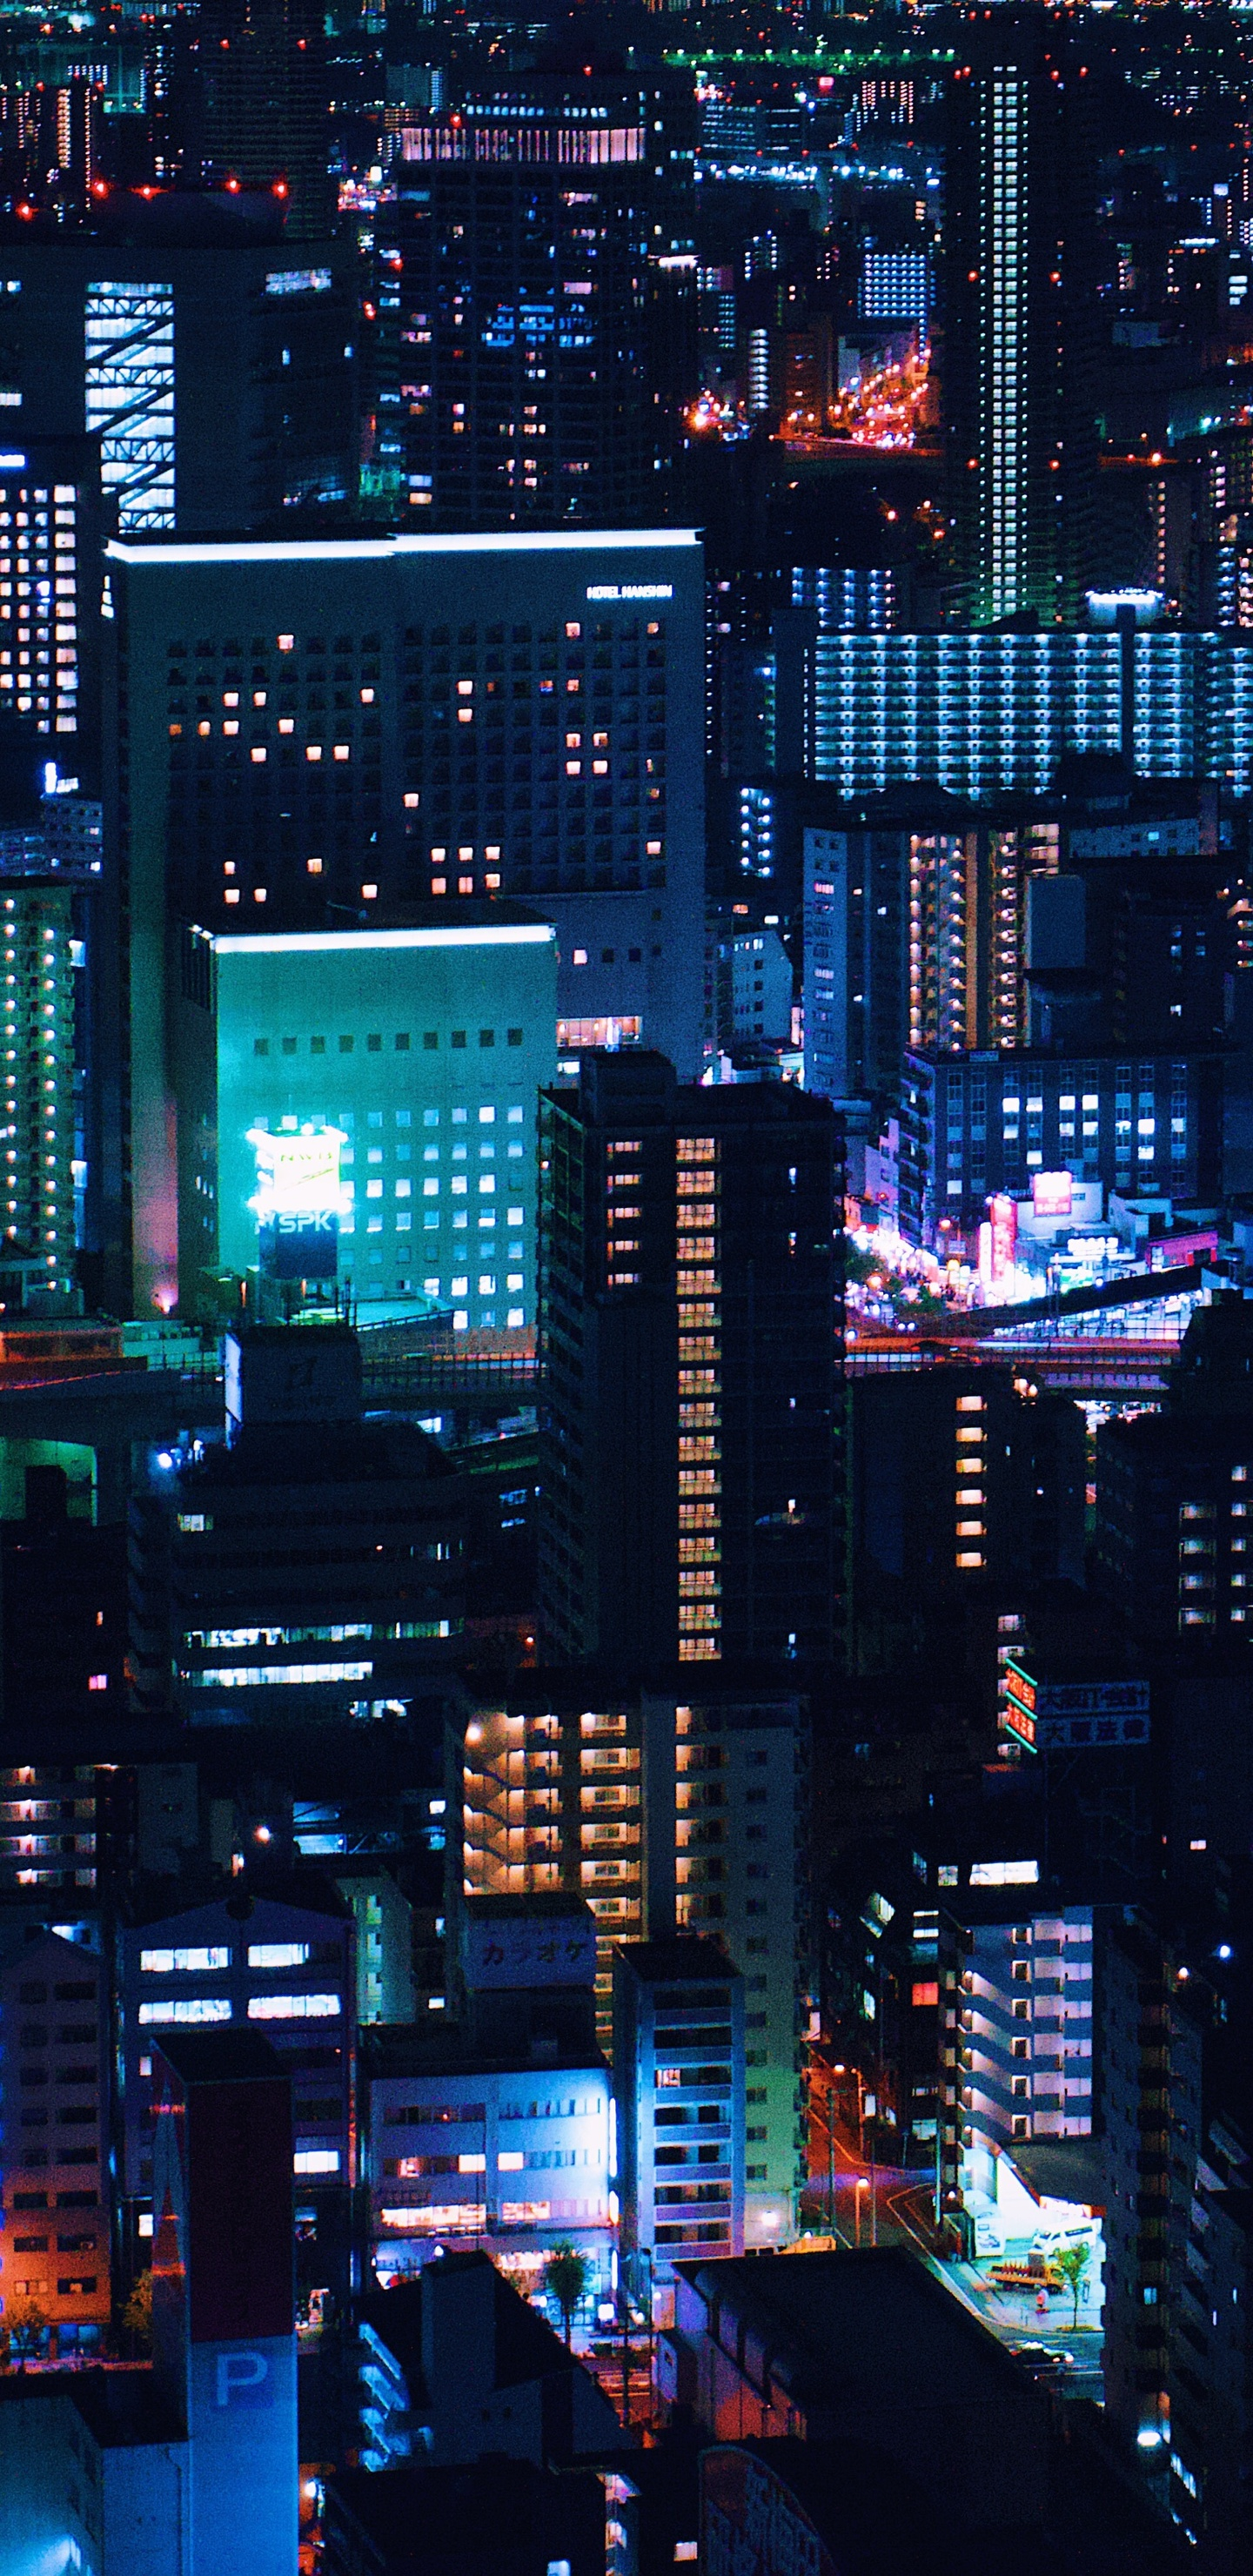 1440x2960 Urban Night City Down Town 5k Samsung Galaxy Note 9 8 S9 S8 S8 Qhd Hd 4k Wallpapers Images Backgrounds Photos And Pictures